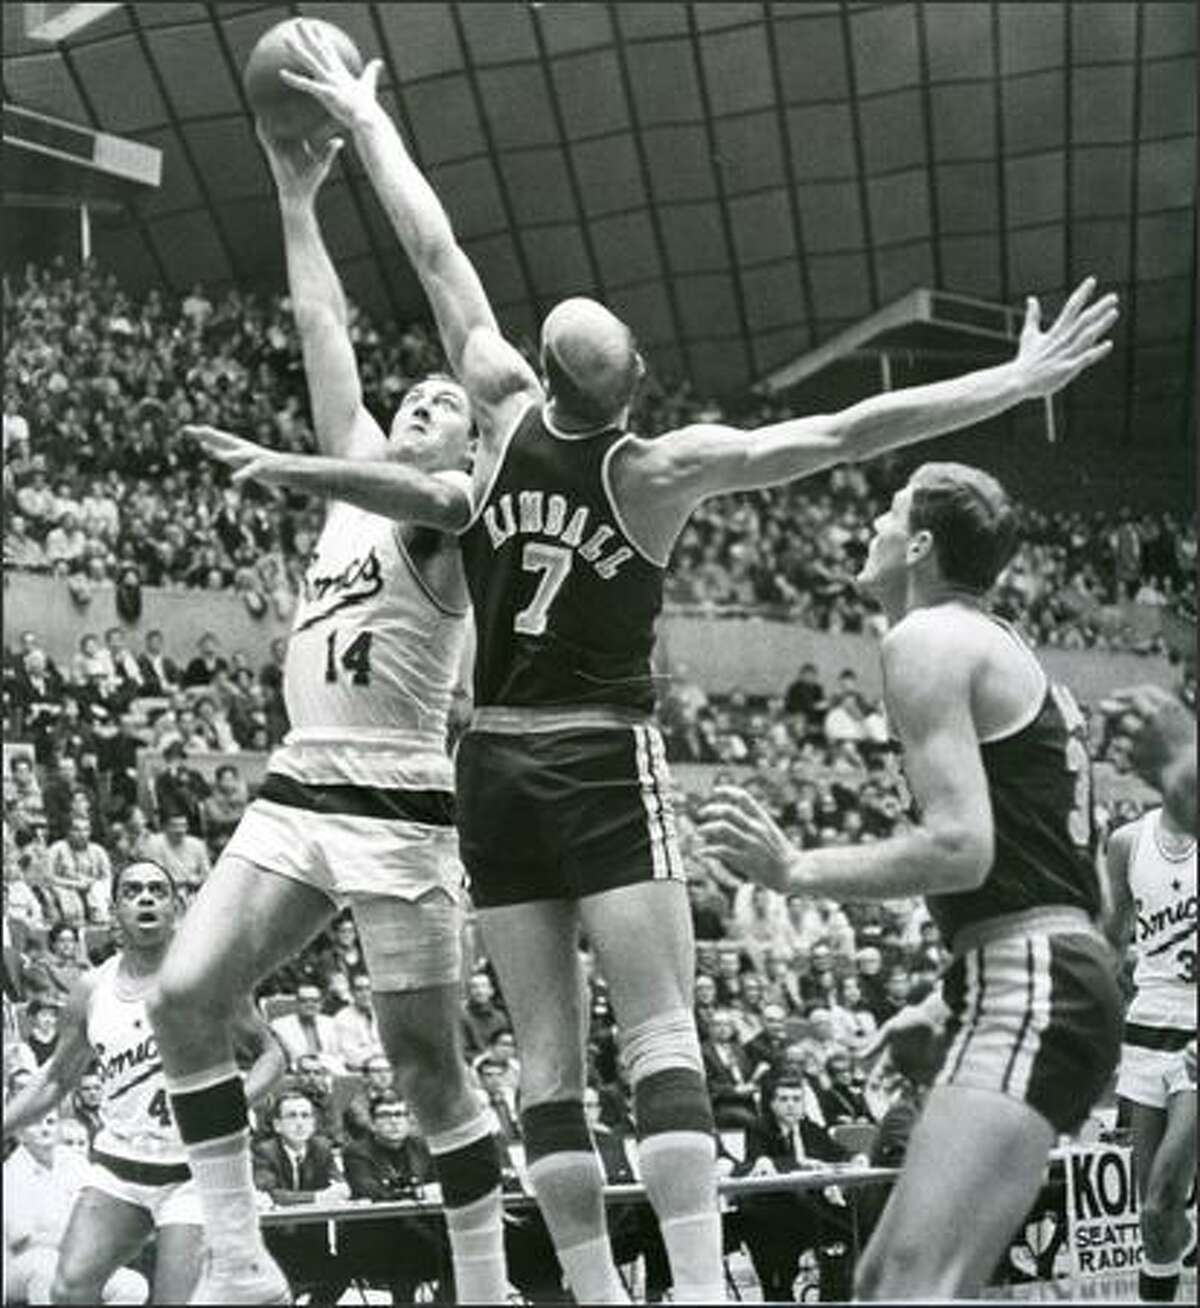 1967: Seattle SuperSonics player Tom Meschery shoots against San Diego.